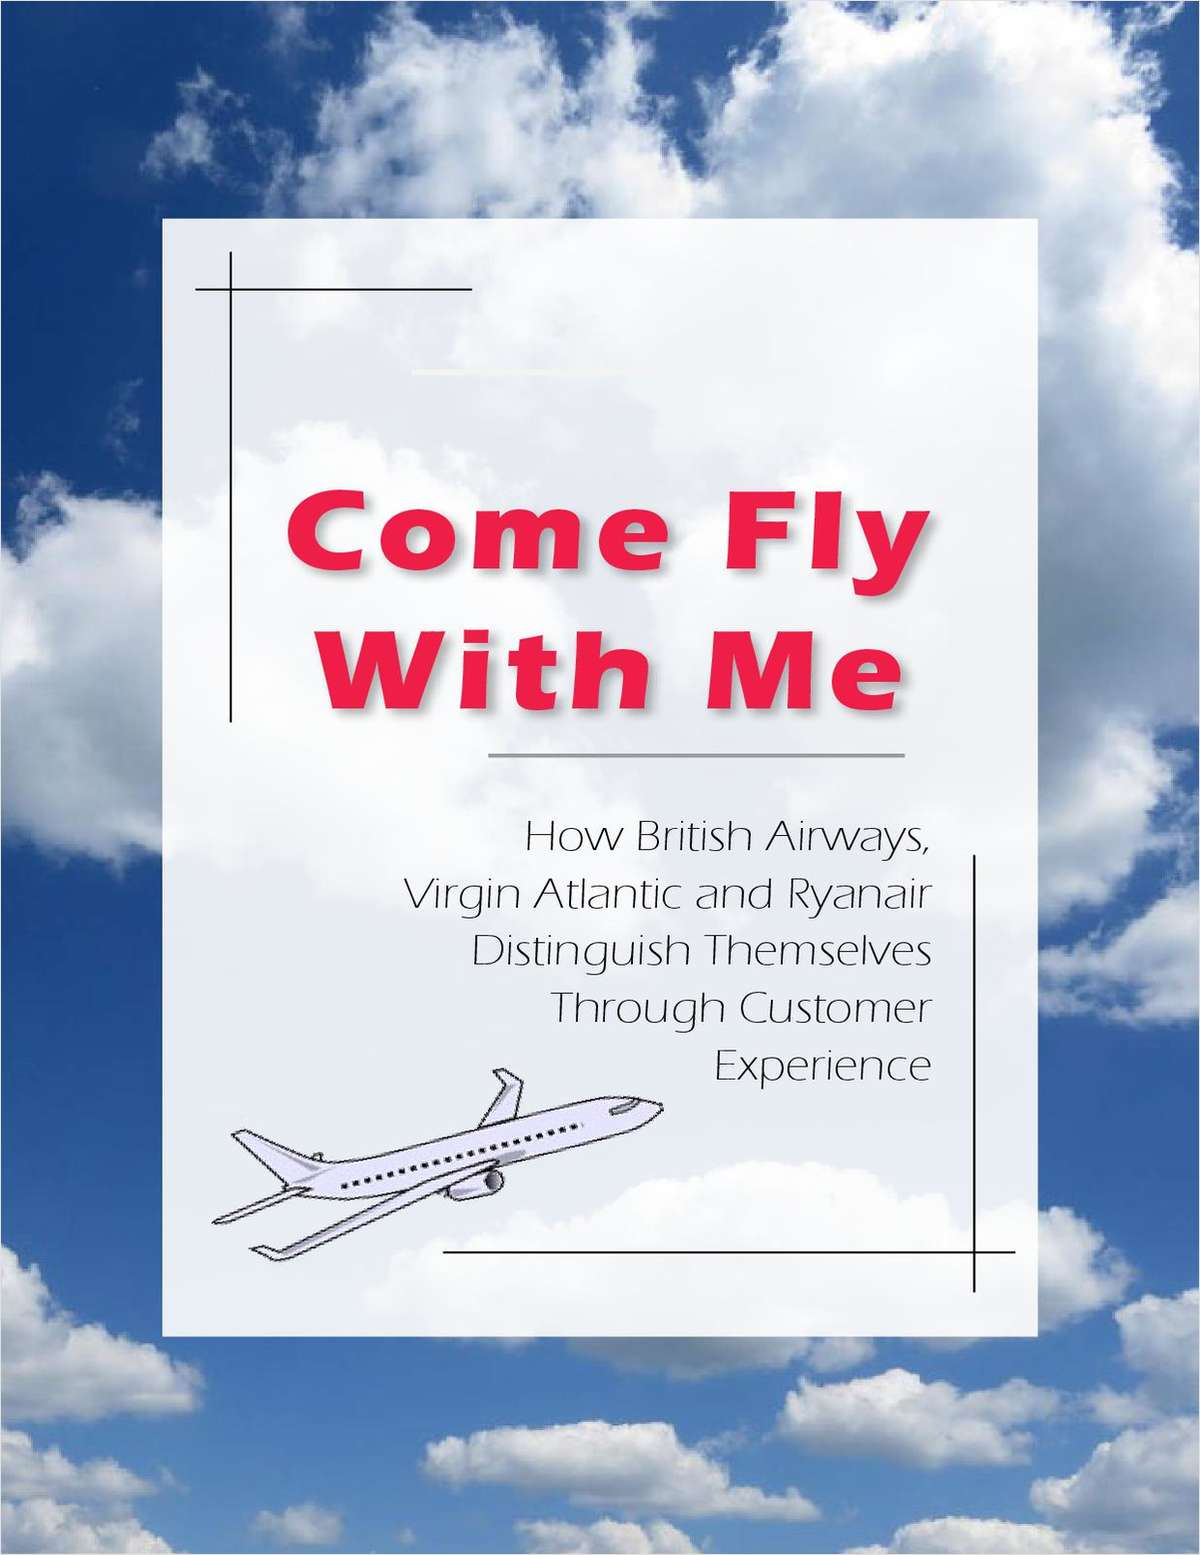 Come Fly With Me: How British Airways, Virgin Atlantic and Ryanair Distinguish Themselves Through Customer Experience